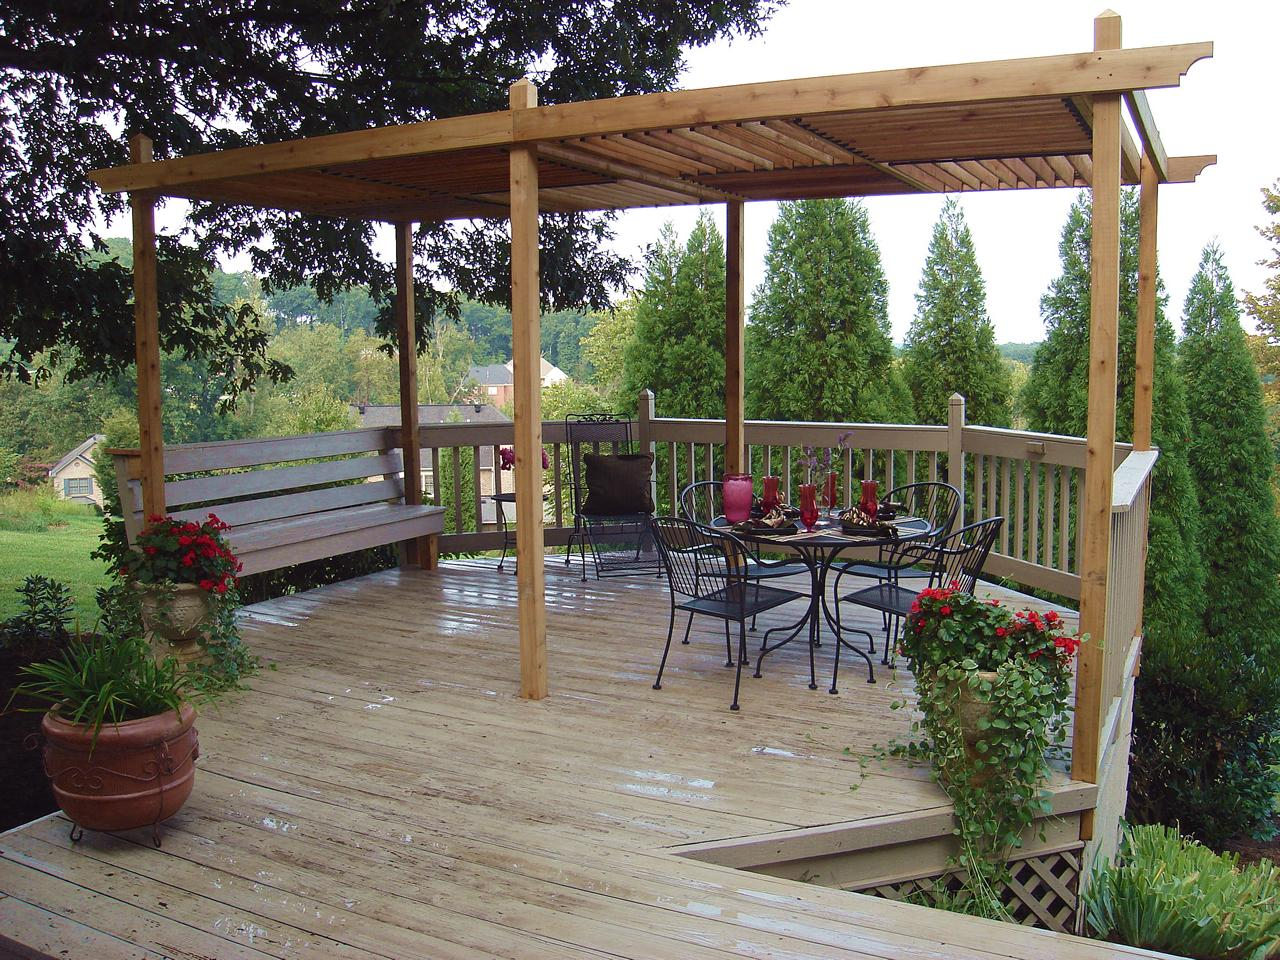 How to build a backyard pergola hgtv for Pergolas para jardin